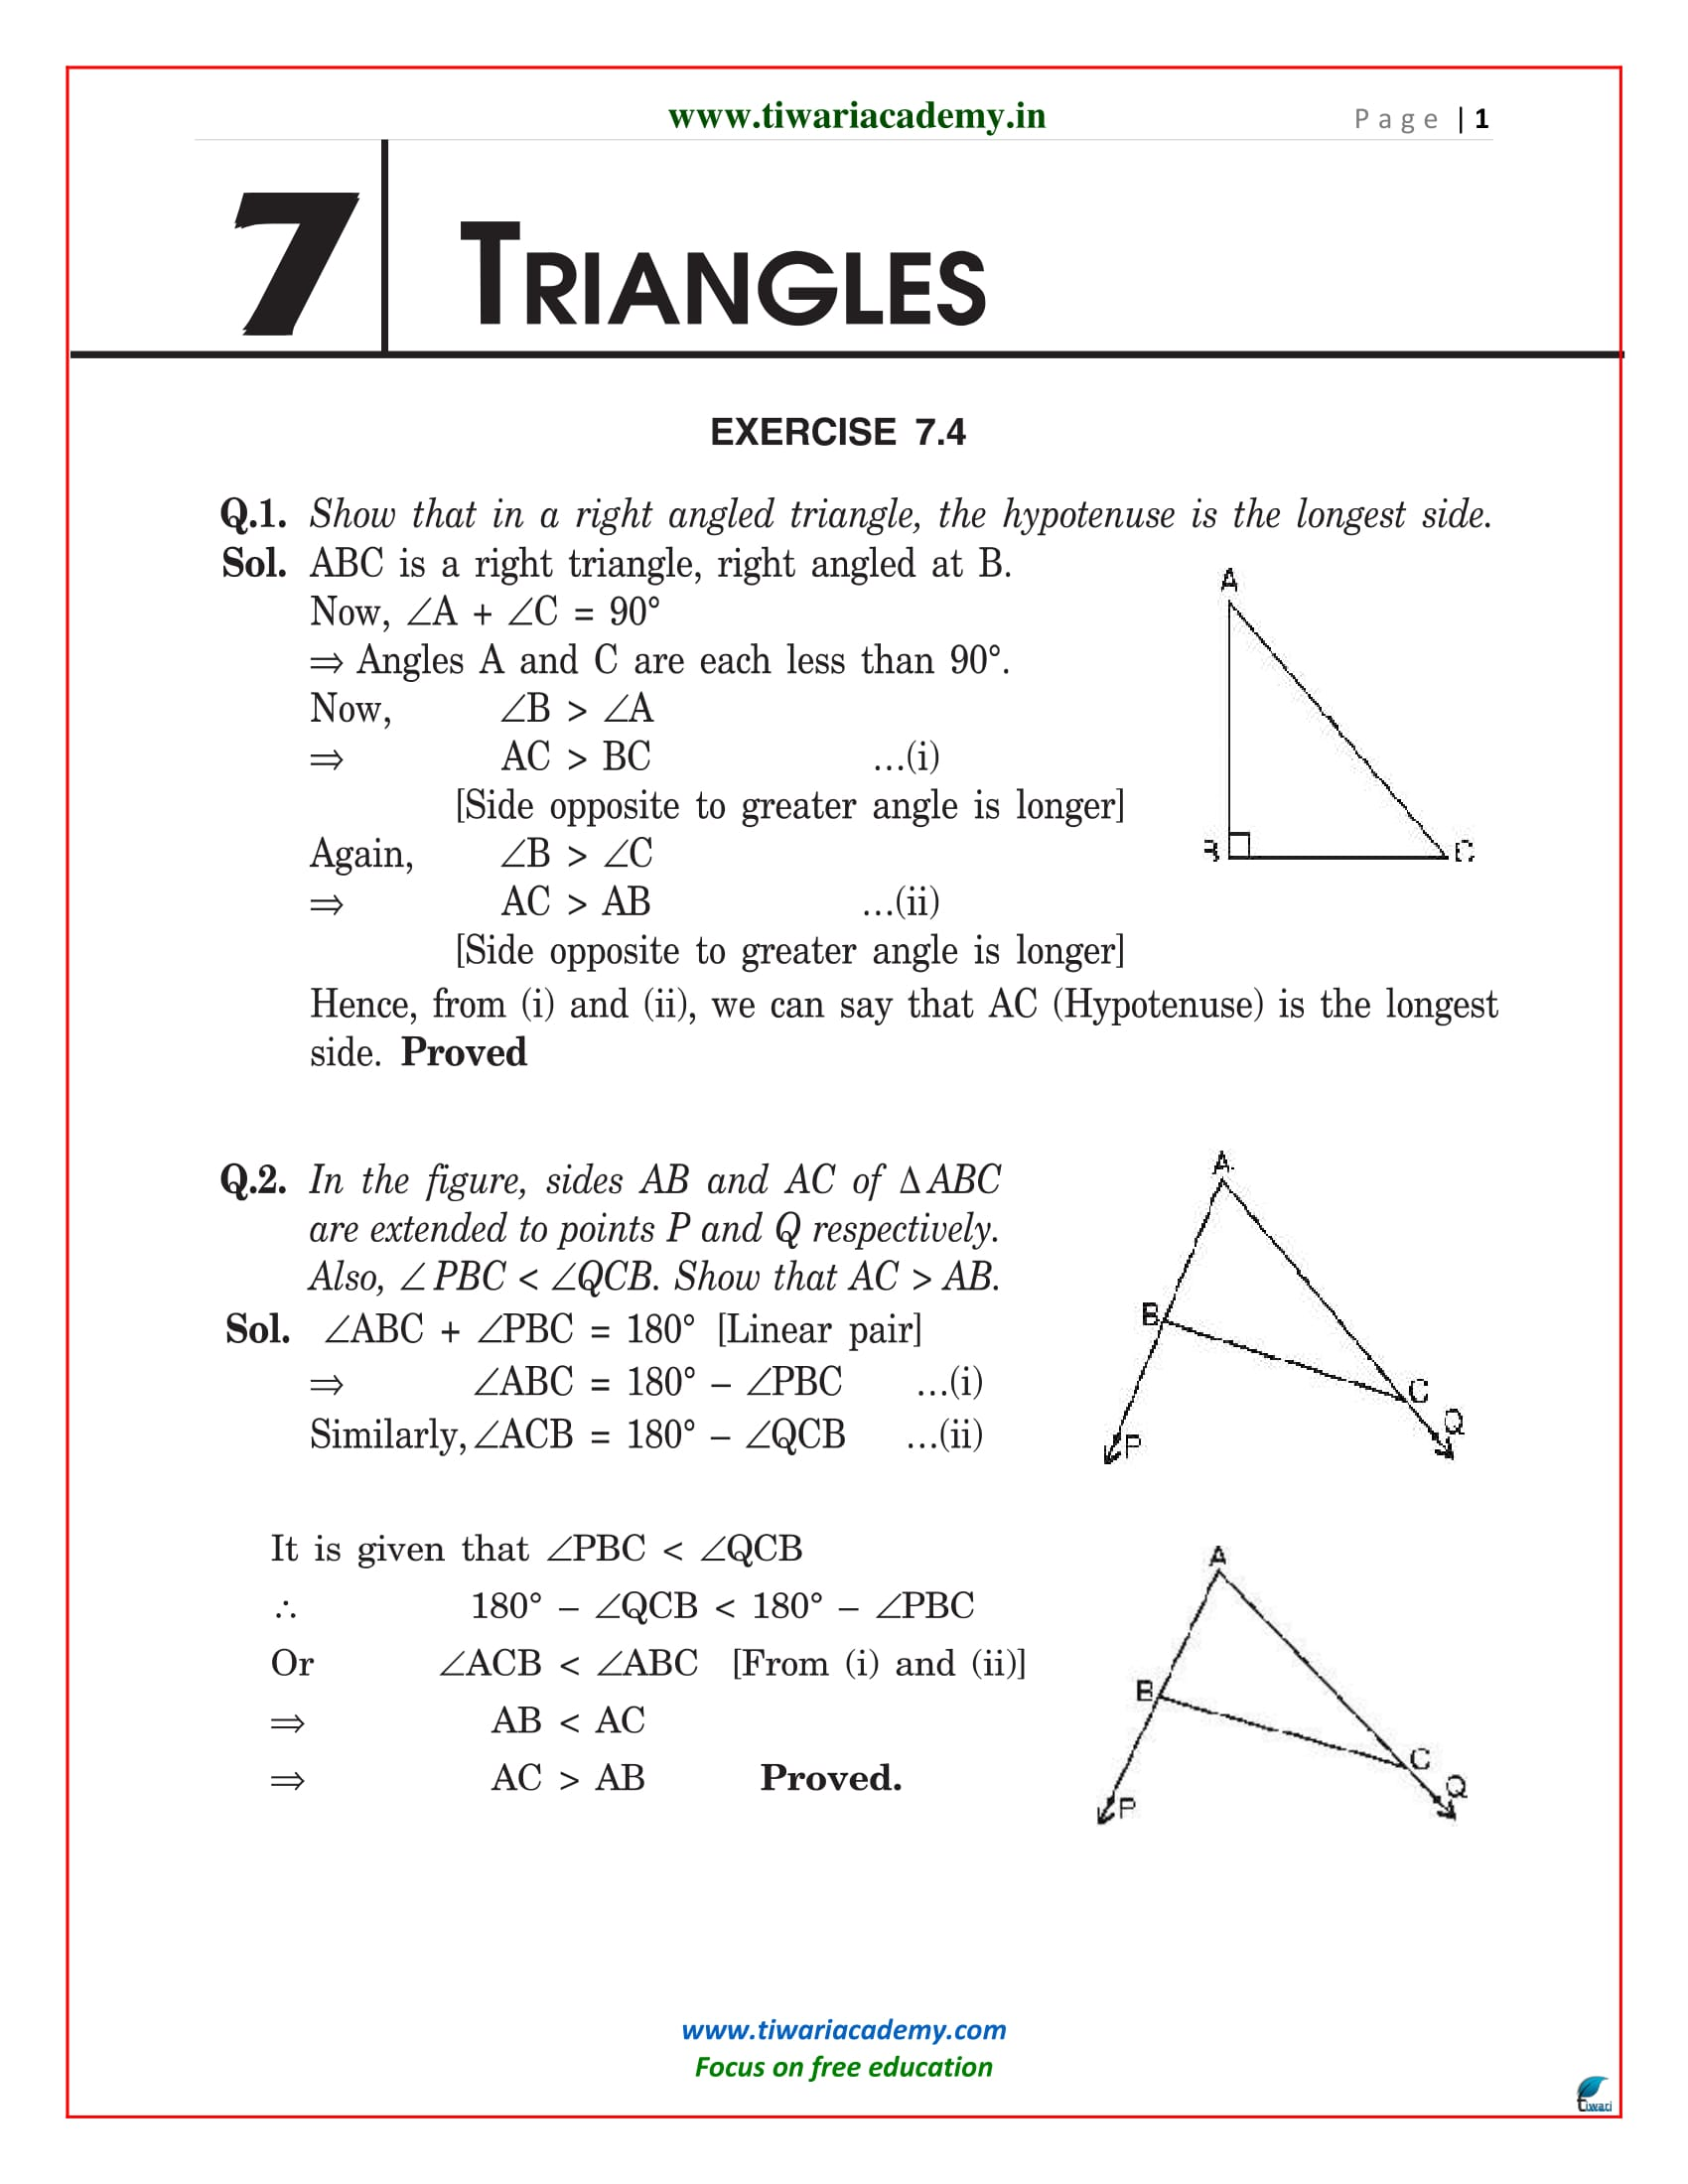 NCERT Solutions for Class 9 Maths Chapter 7 Exercise 7.4